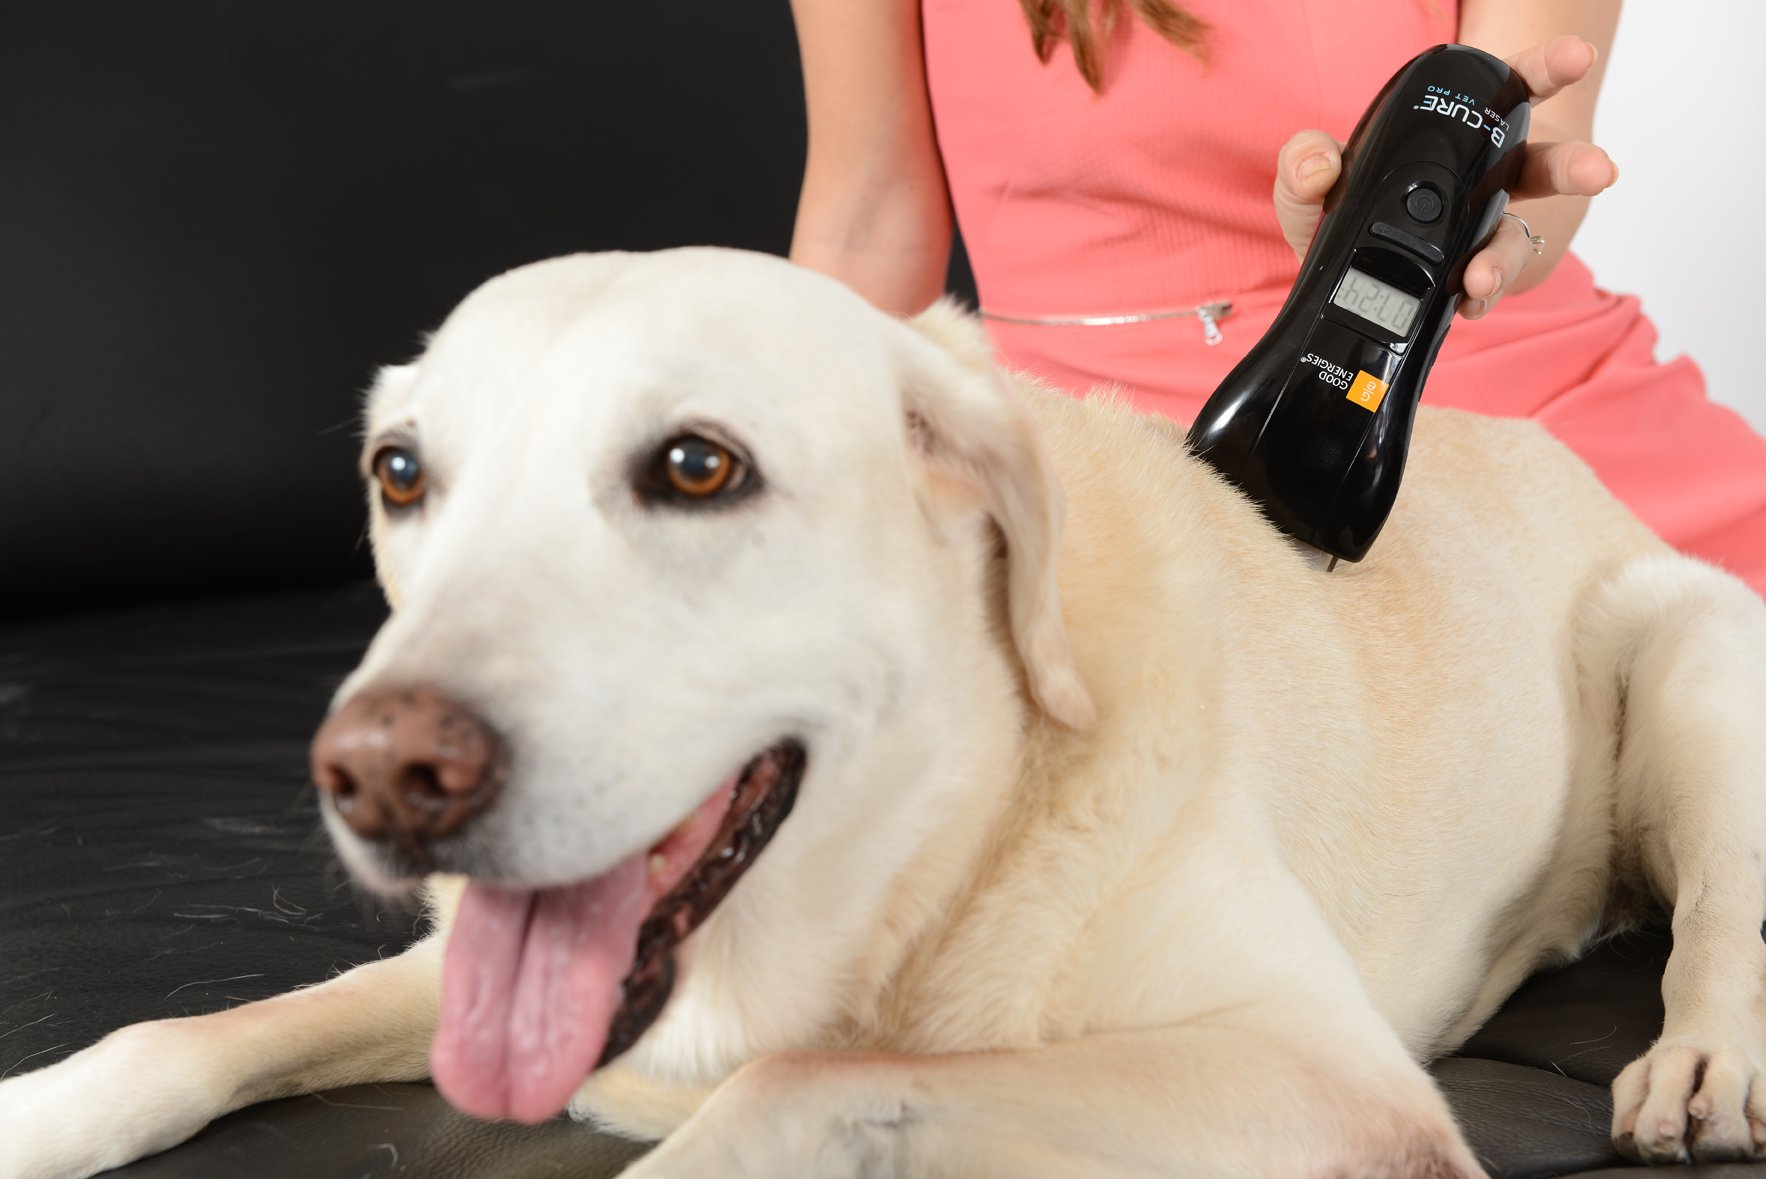 B-cure Laser Vet Device for Pets: A Home Laser Therapy, Accelerates Healing and Reduces Pain and Inflammation in Dogs, Cats, Horses and Other Animals